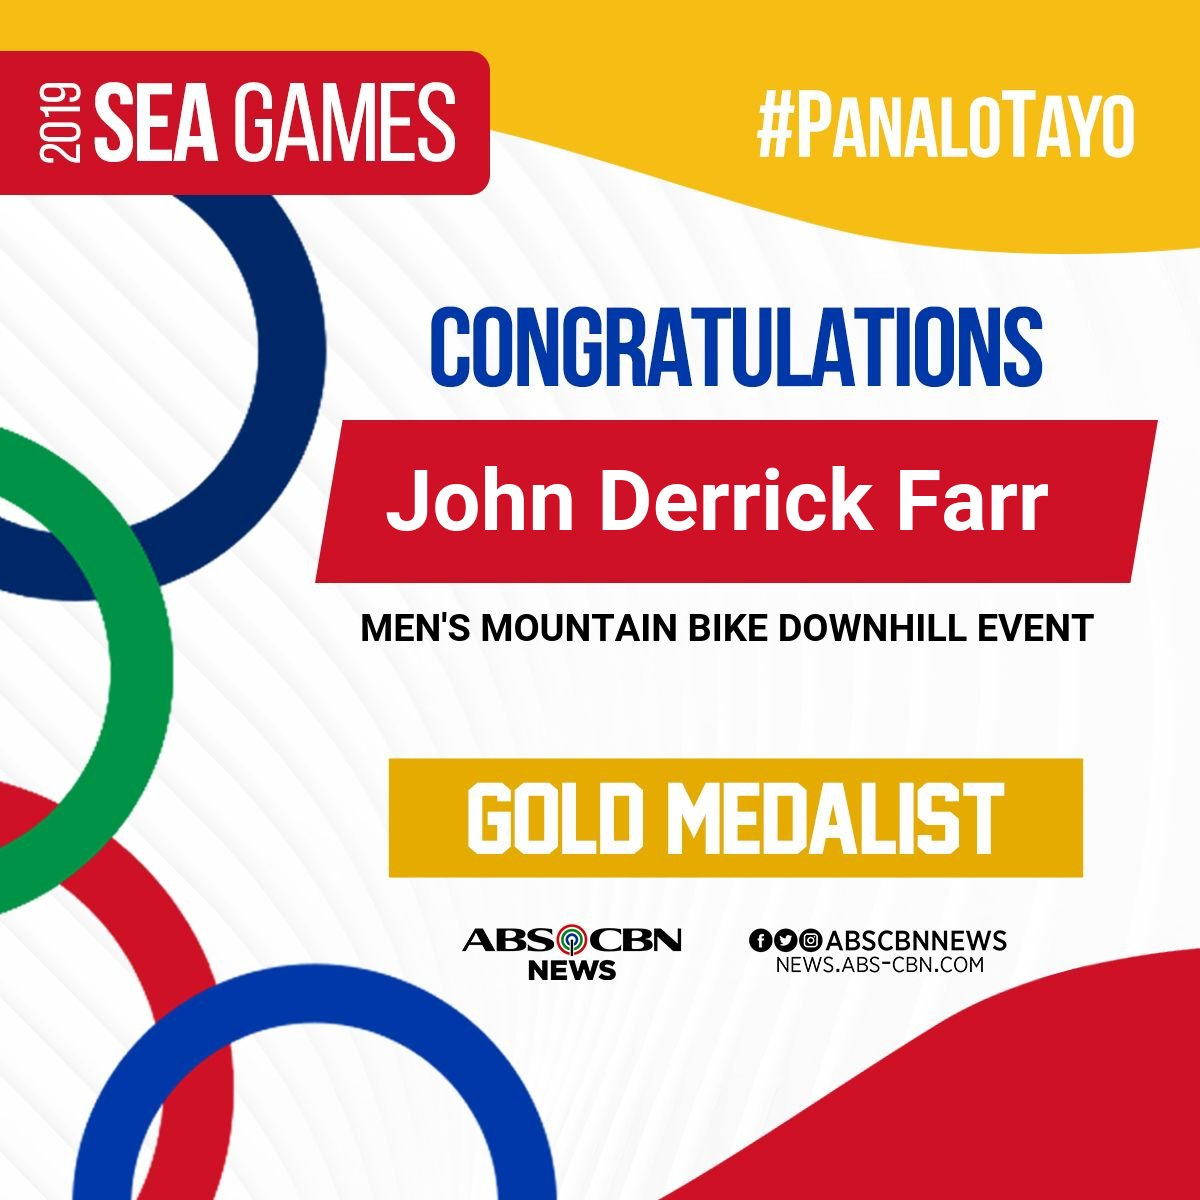 test Twitter Media - Another gold for the PH! 🇵🇭  John Derrick Farr adds another gold to the Philippine medal haul in cycling men's downhill event. #SEAGames2019 #PanaloTayo (April Rose Magpantay, ABS-CBN News)  For updates on the 30th SEA Games visit https://t.co/a8a0MBtuMJ https://t.co/Z3ExtXLtWN